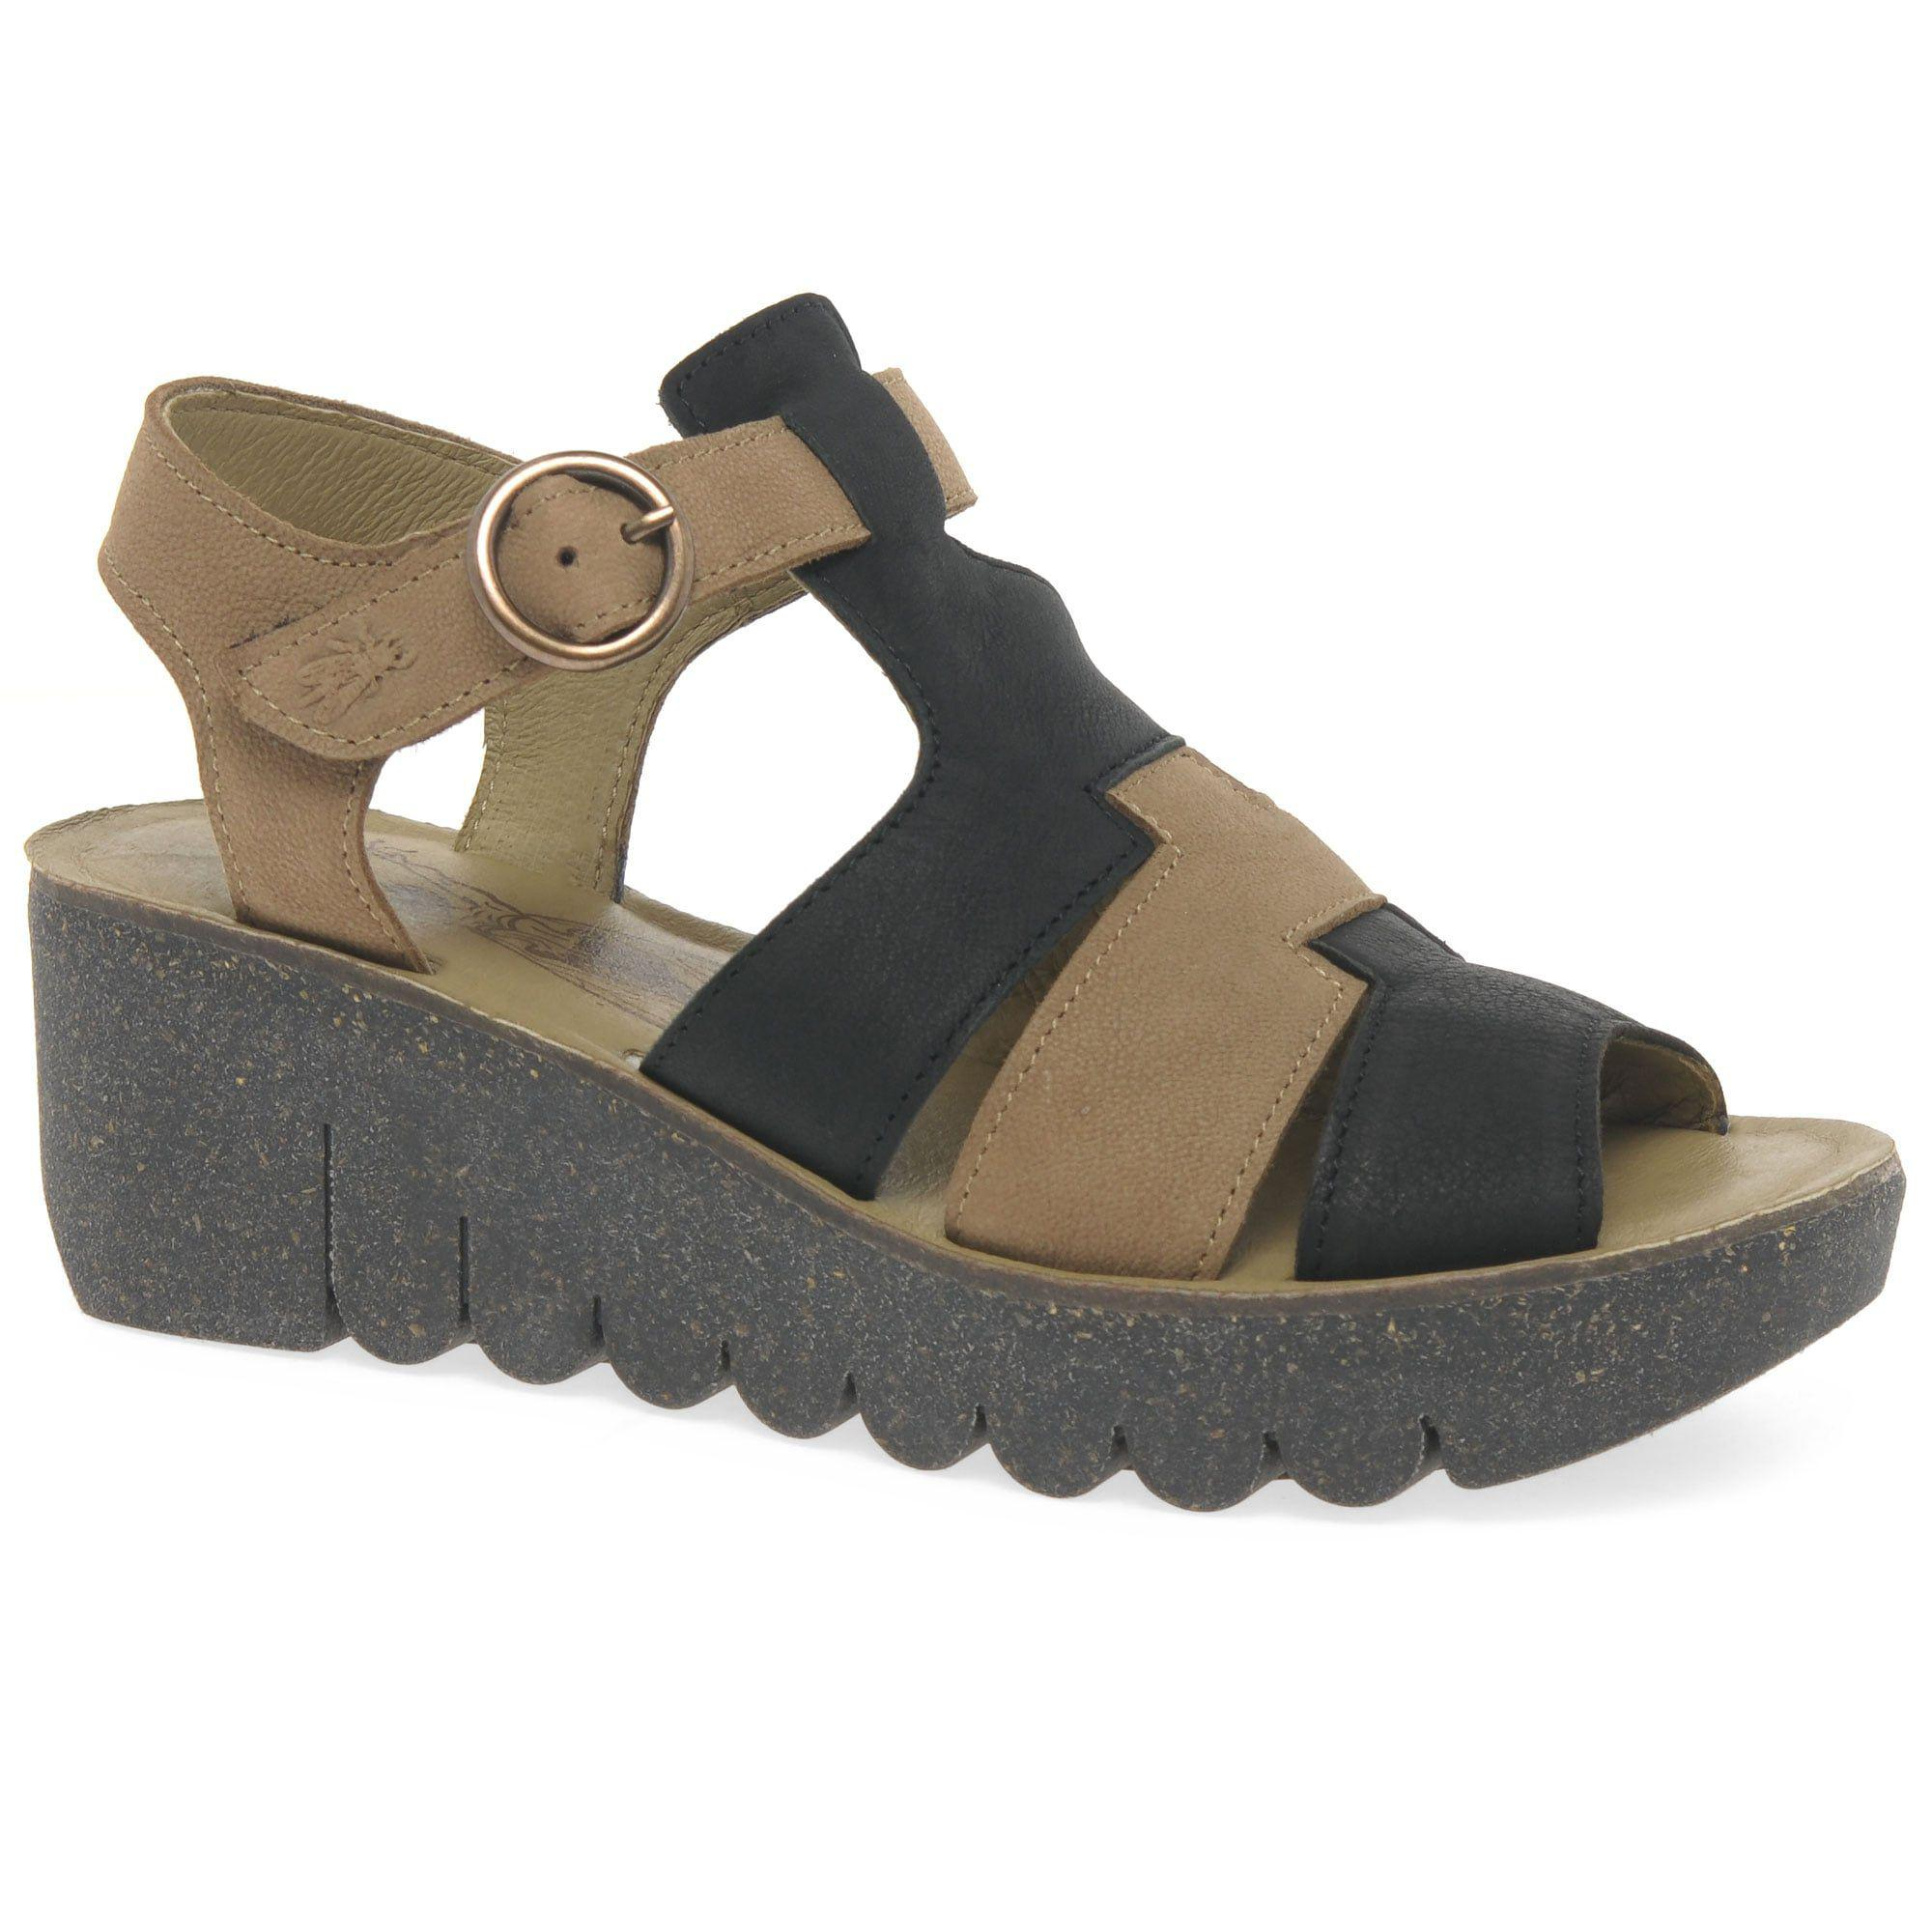 Multi Coloured leather 'Yuni' high wedge sandals fashionable looking for cheap online wIKoe